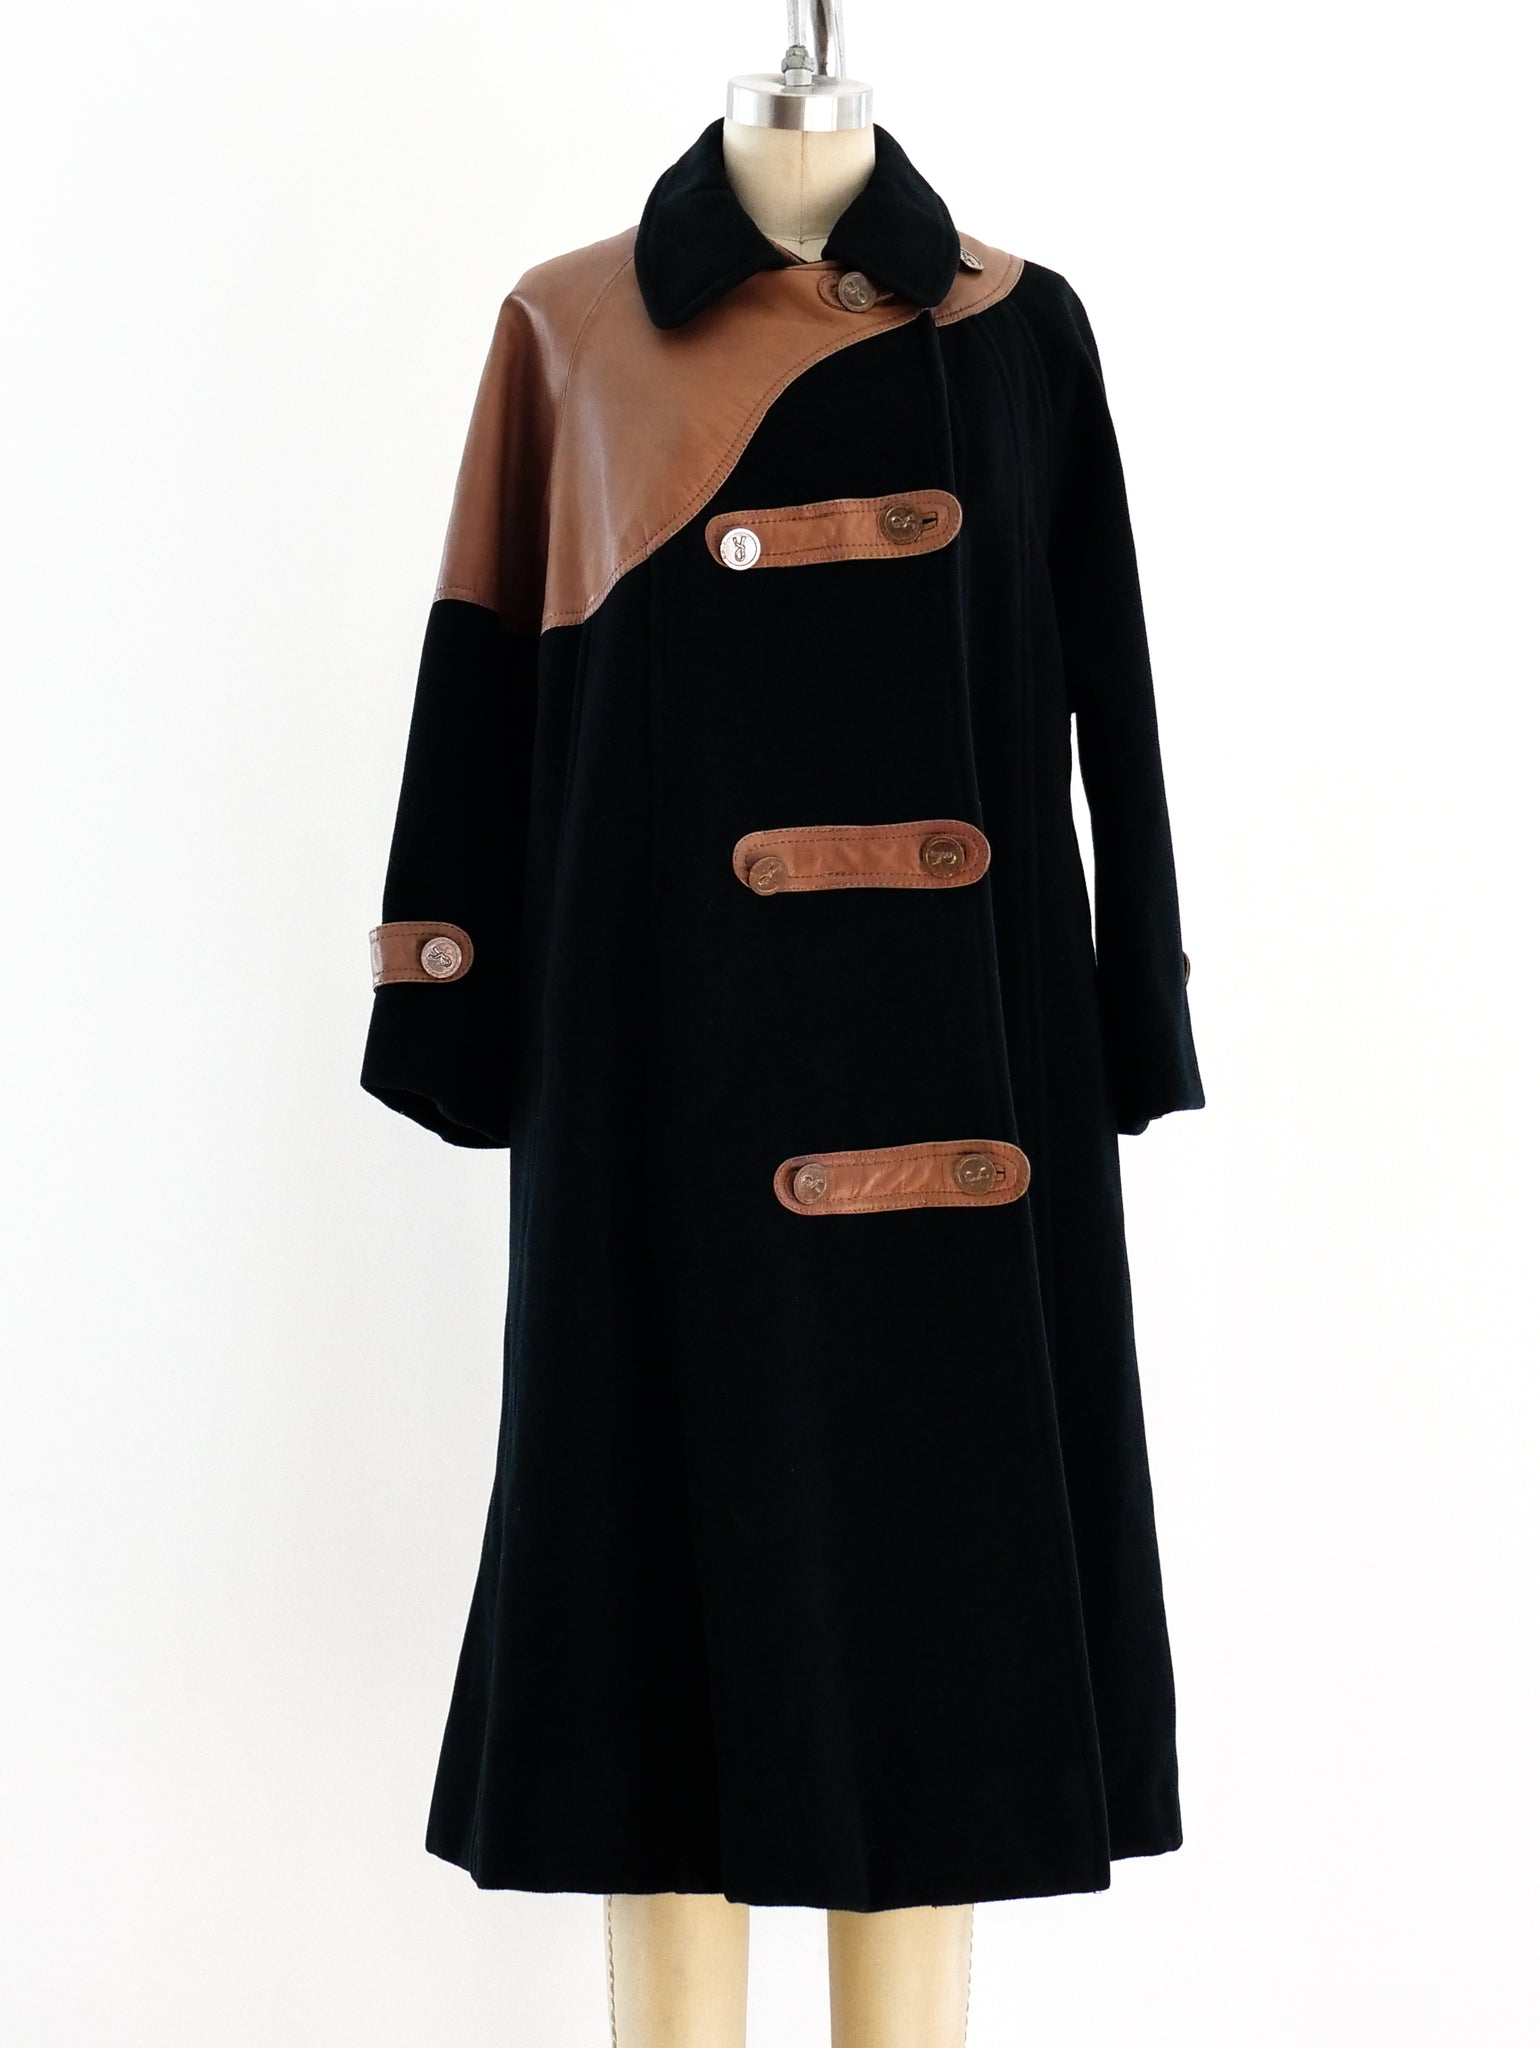 Roberta di Camerino Wool and Leather Coat